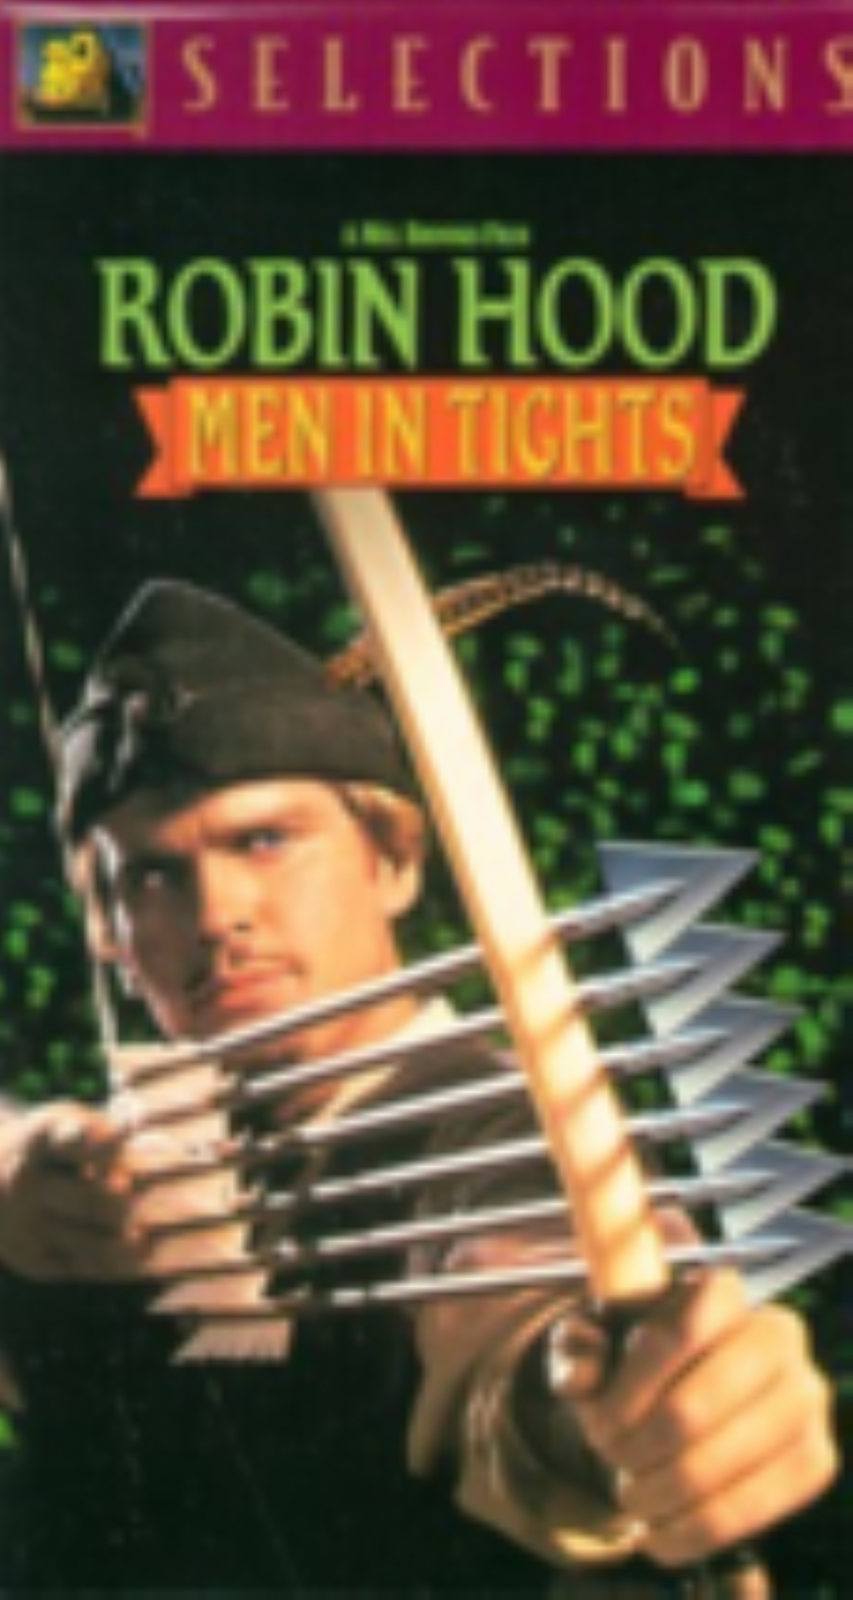 Robin Hood - Men in Tights Vhs